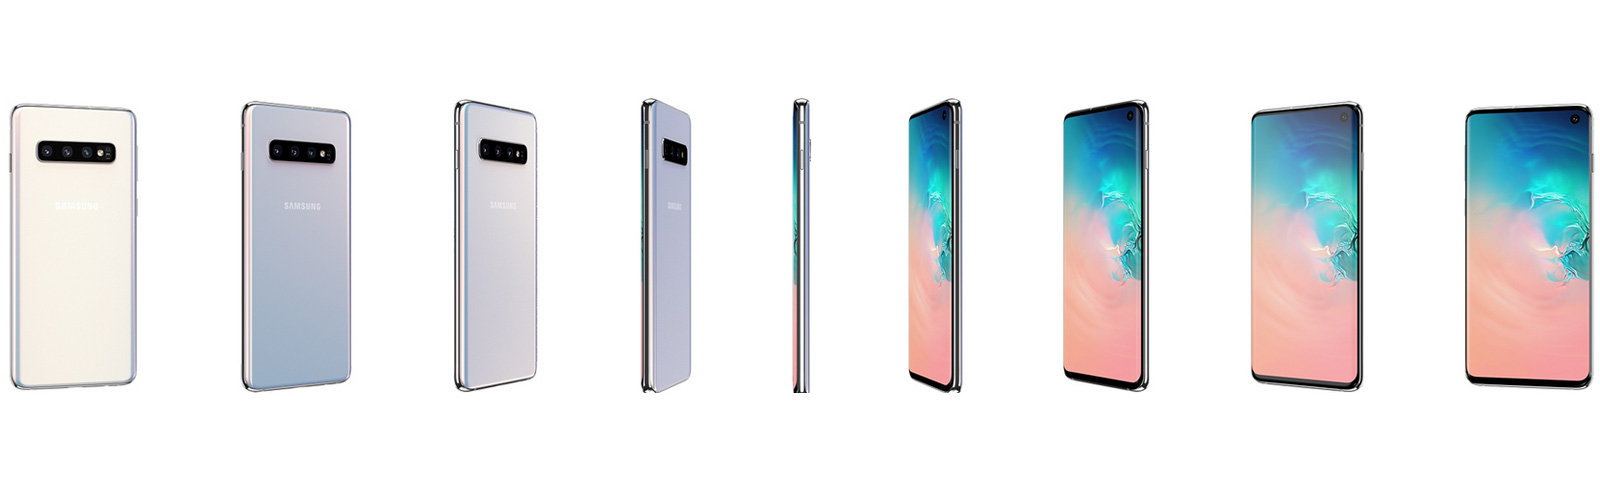 Samsung Galaxy S10 Review - Design and layout